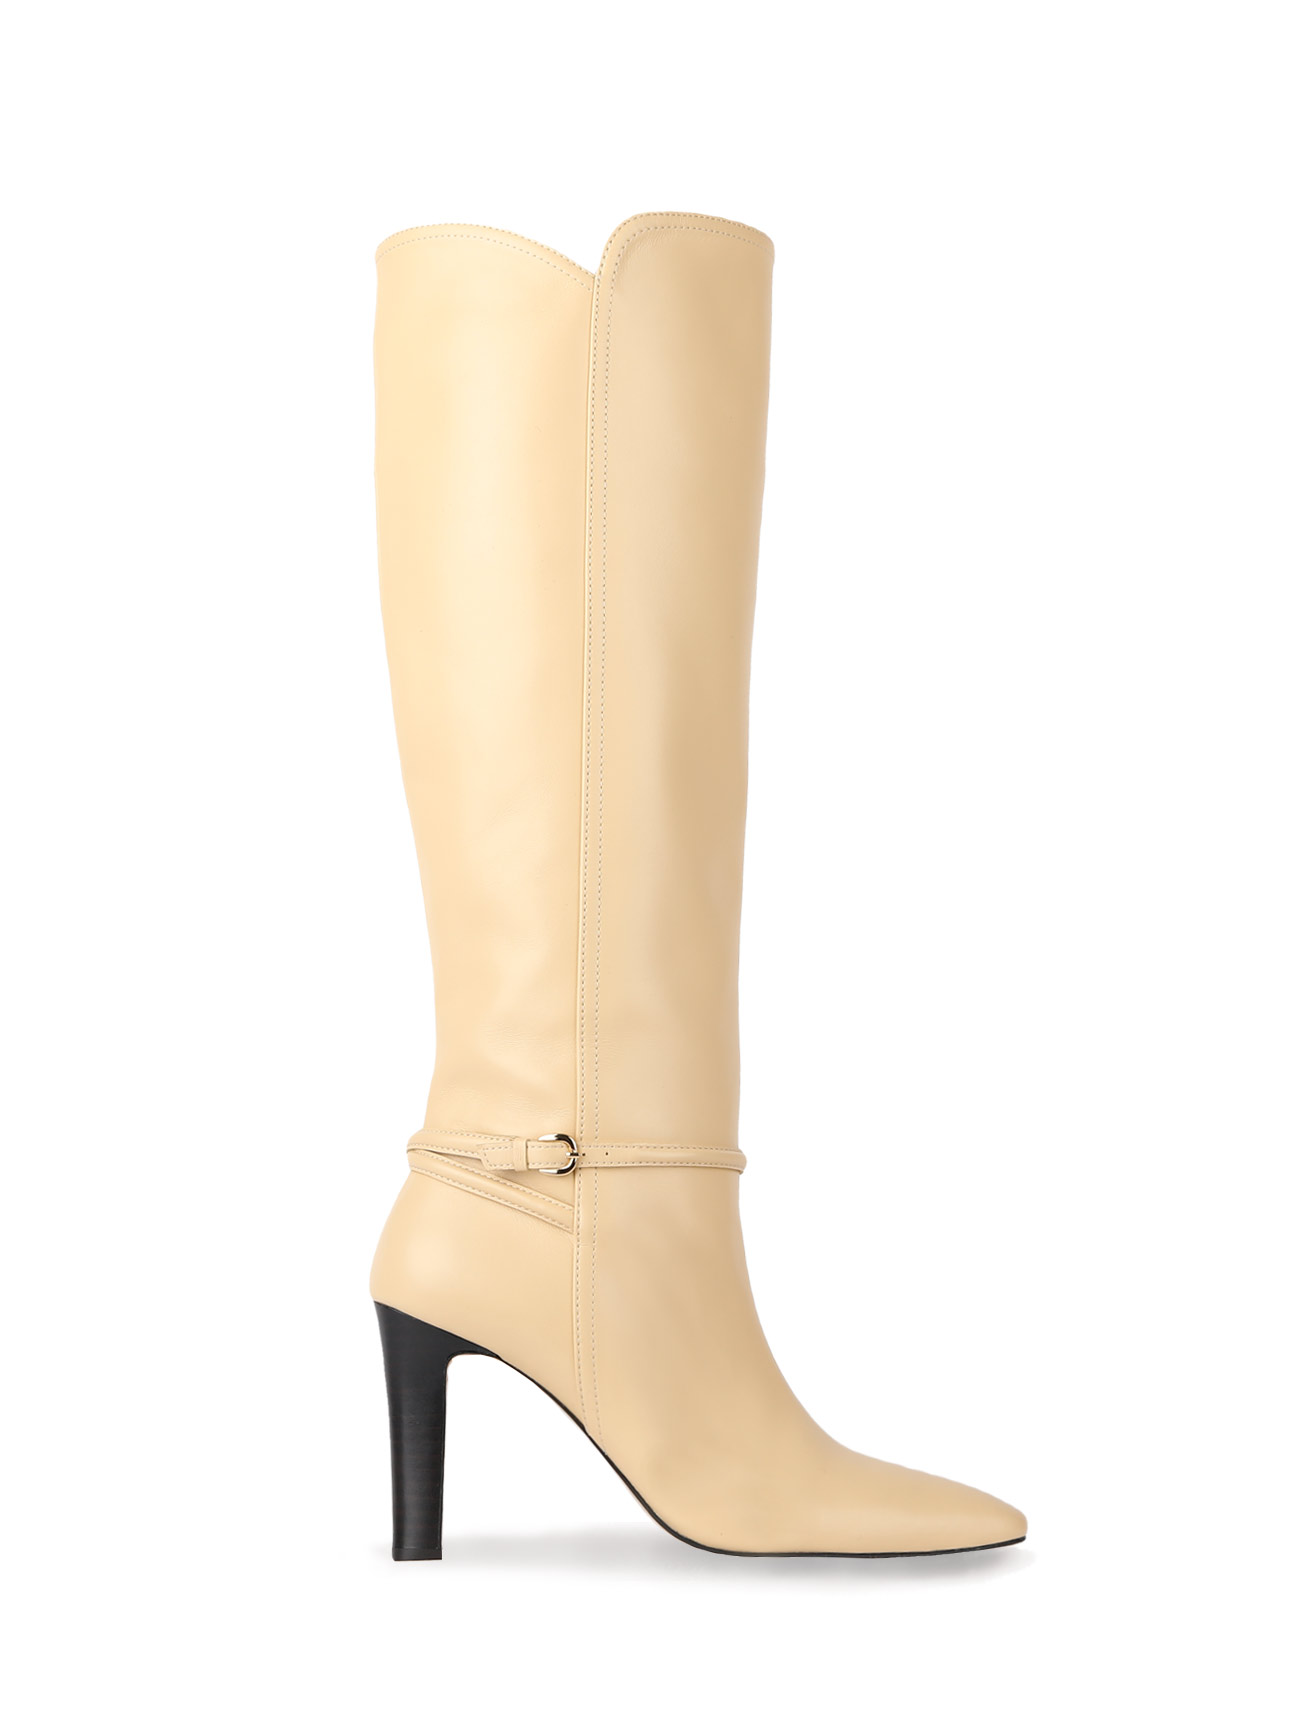 KELLY KNEE-HIGH LEATHER BOOTS (7cm, 9cm) - BUTTER